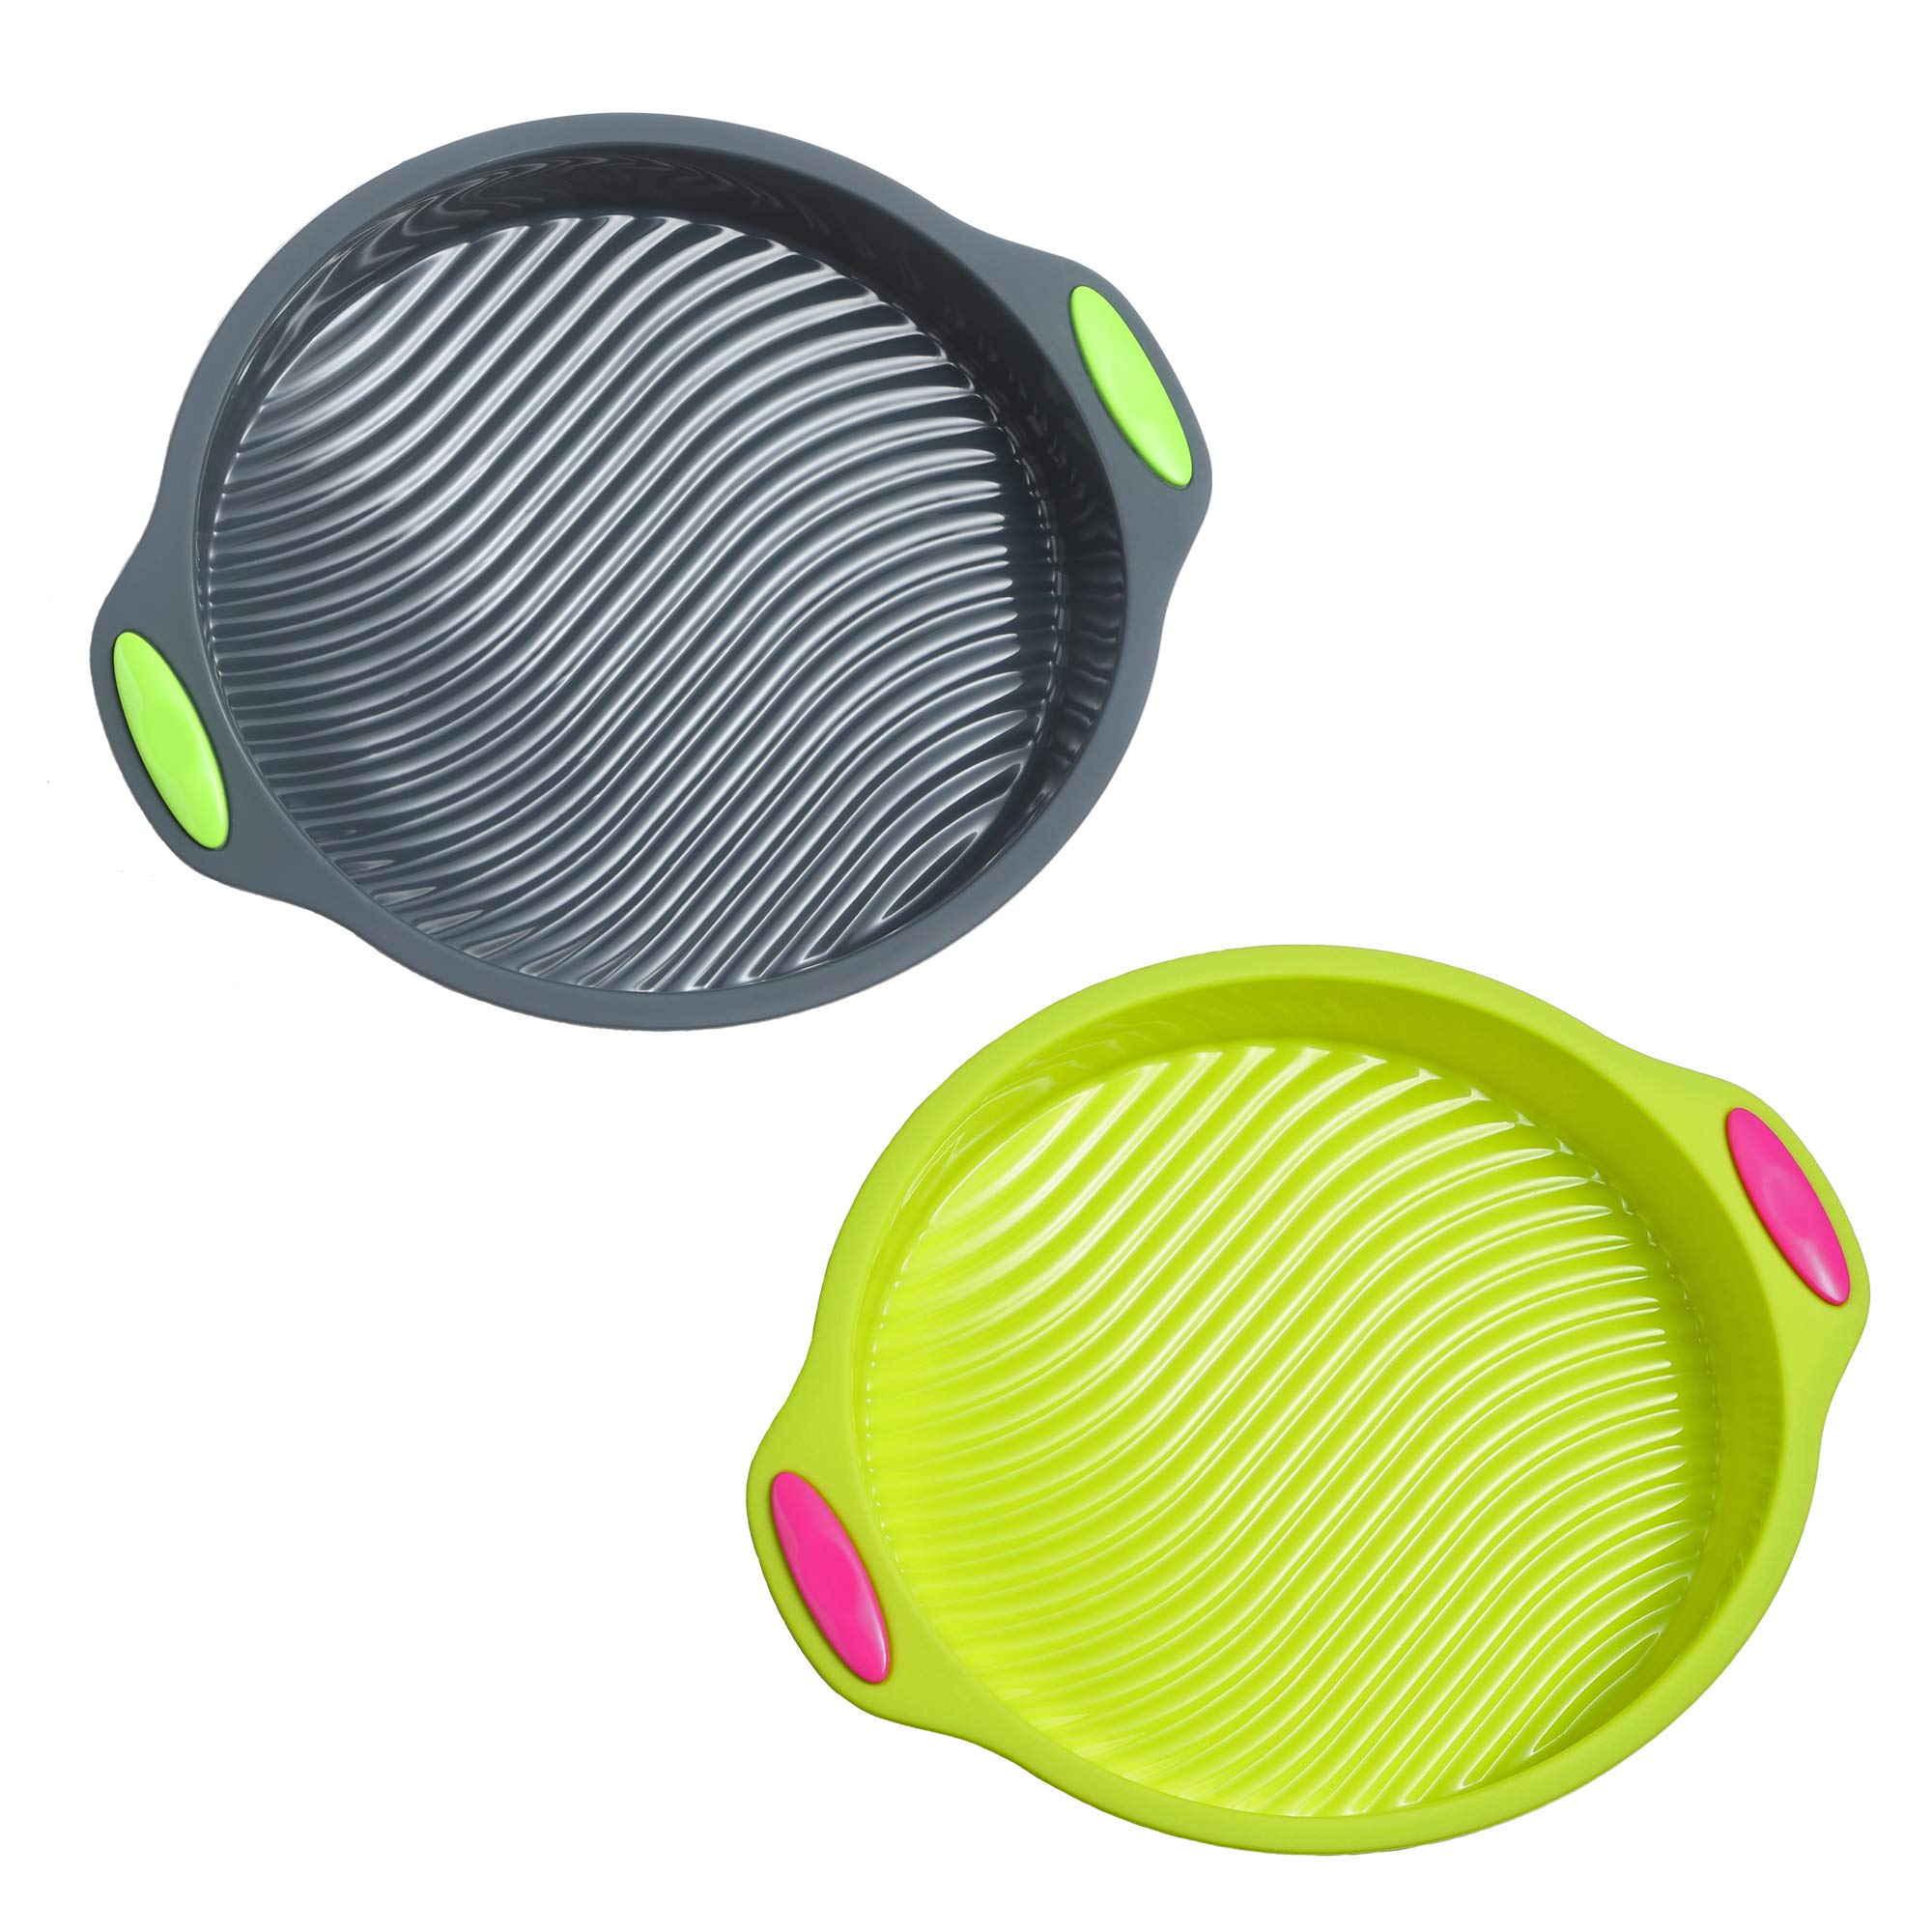 Megrocle 9-Inch Food Grade Silicone Round Cake Pan Set of 2, Non Stick Reusable BPA-Free FDA-Approved Large Baking Pans Silicone Cake Mold Bakeware Set by megrocle